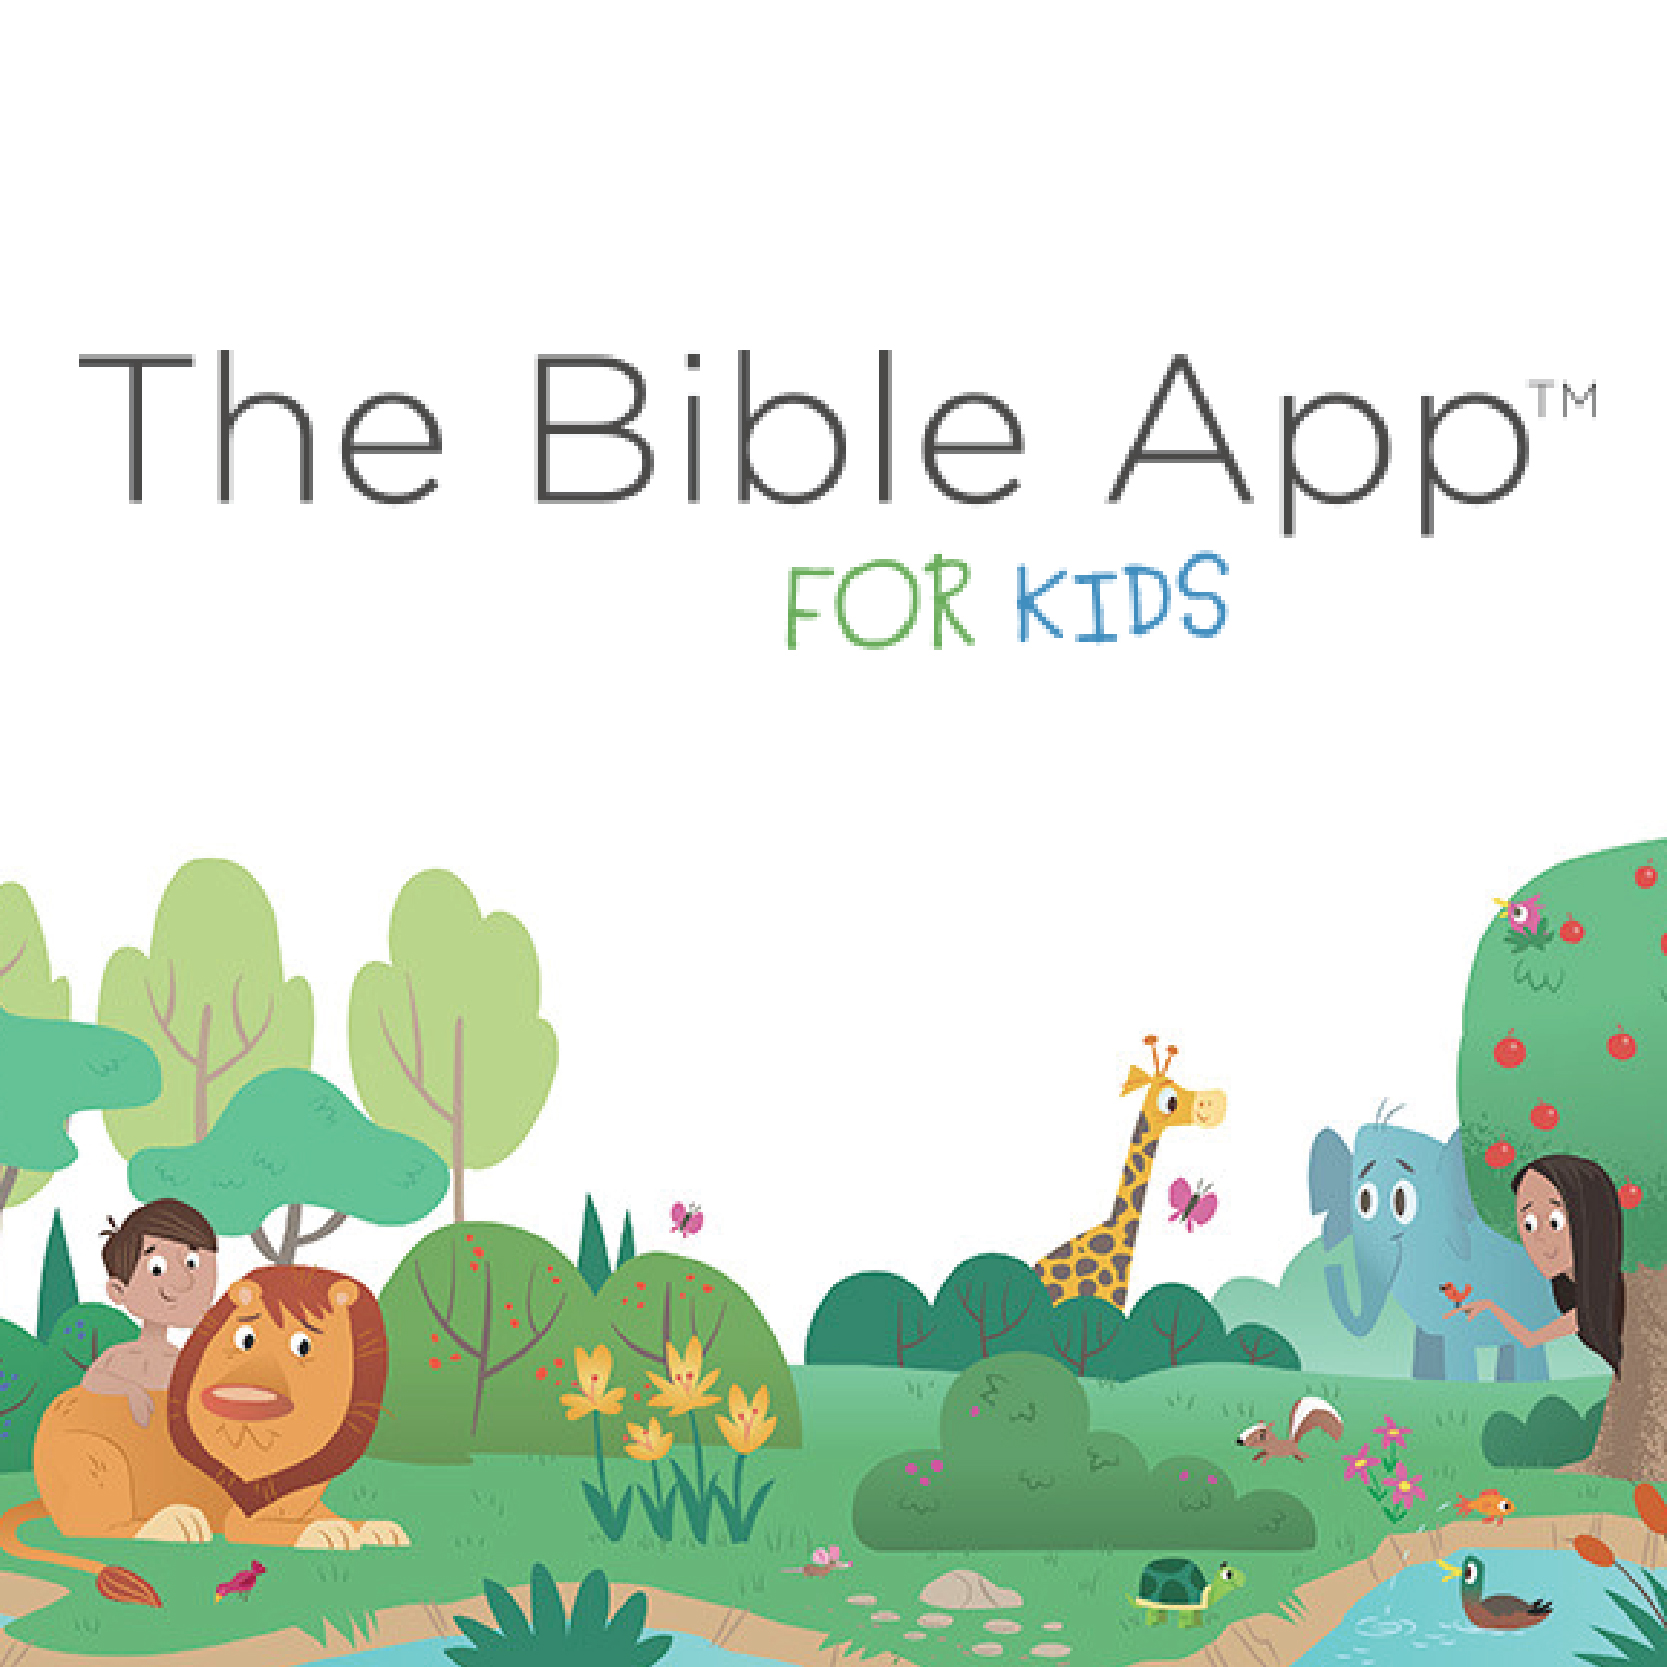 bible app for kids marketing images creative youversion free